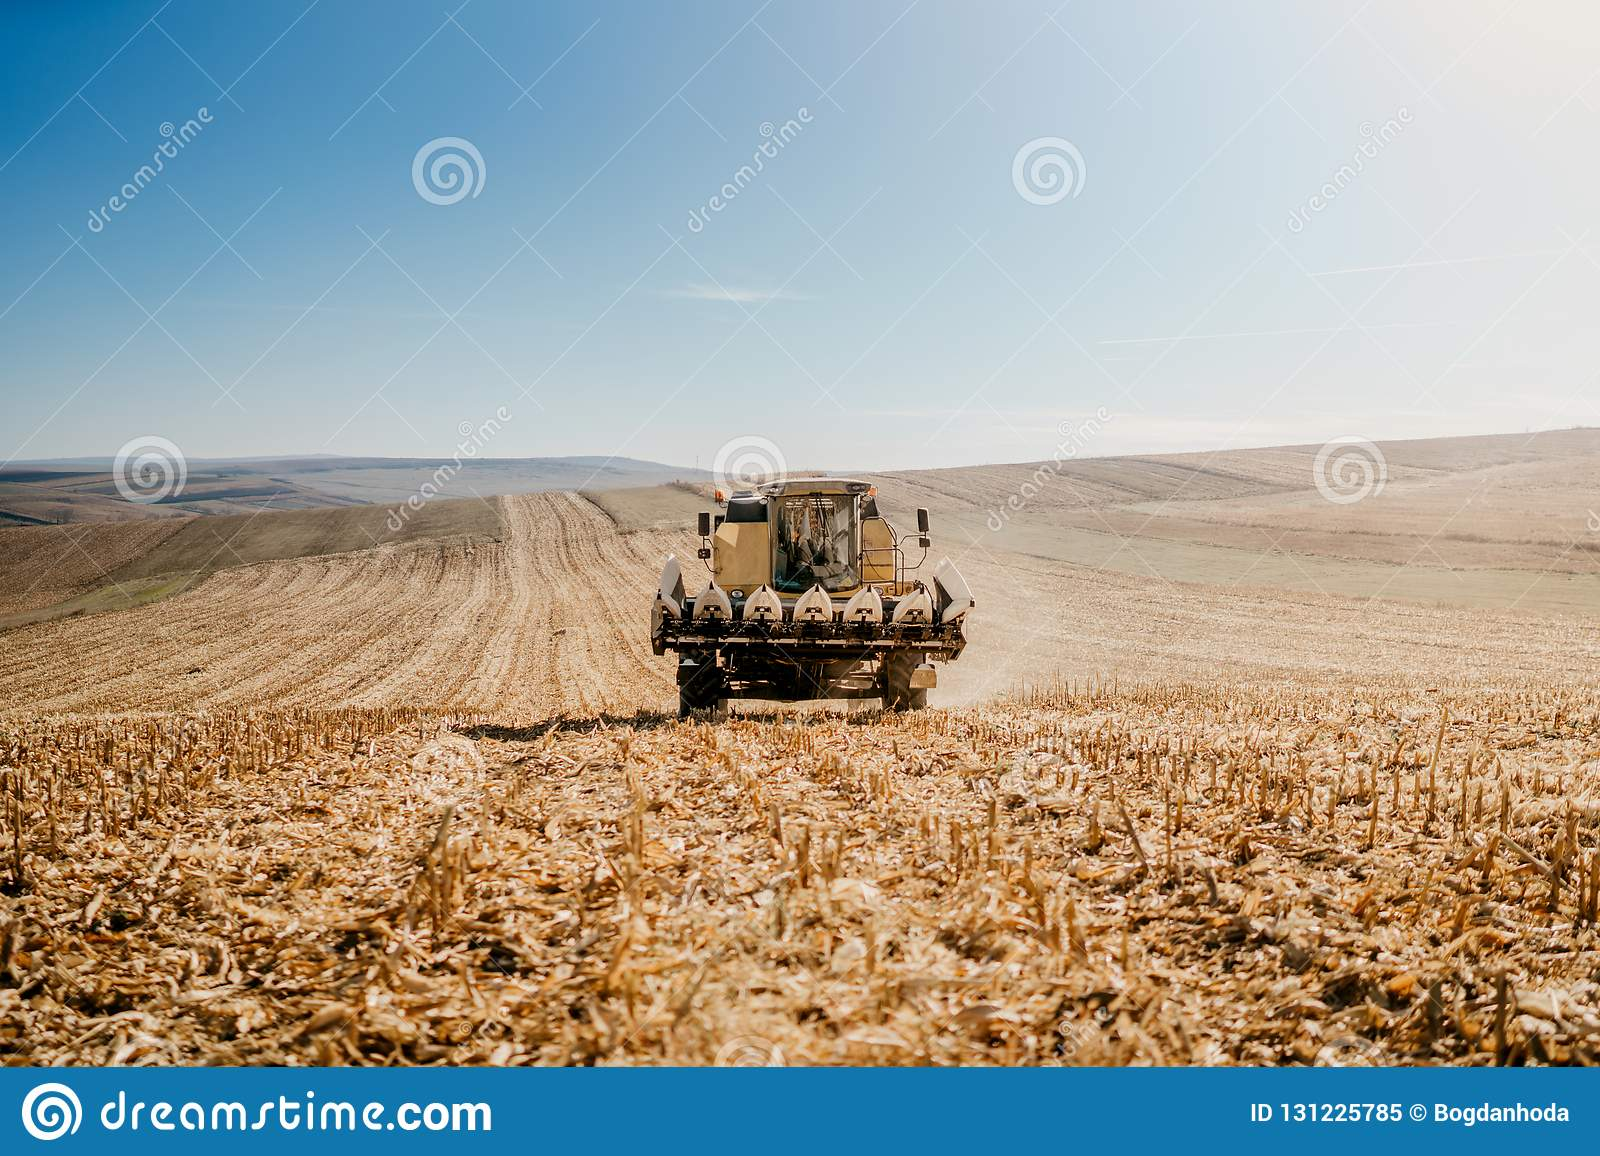 Harvester in the field. General corn and wheat landscape